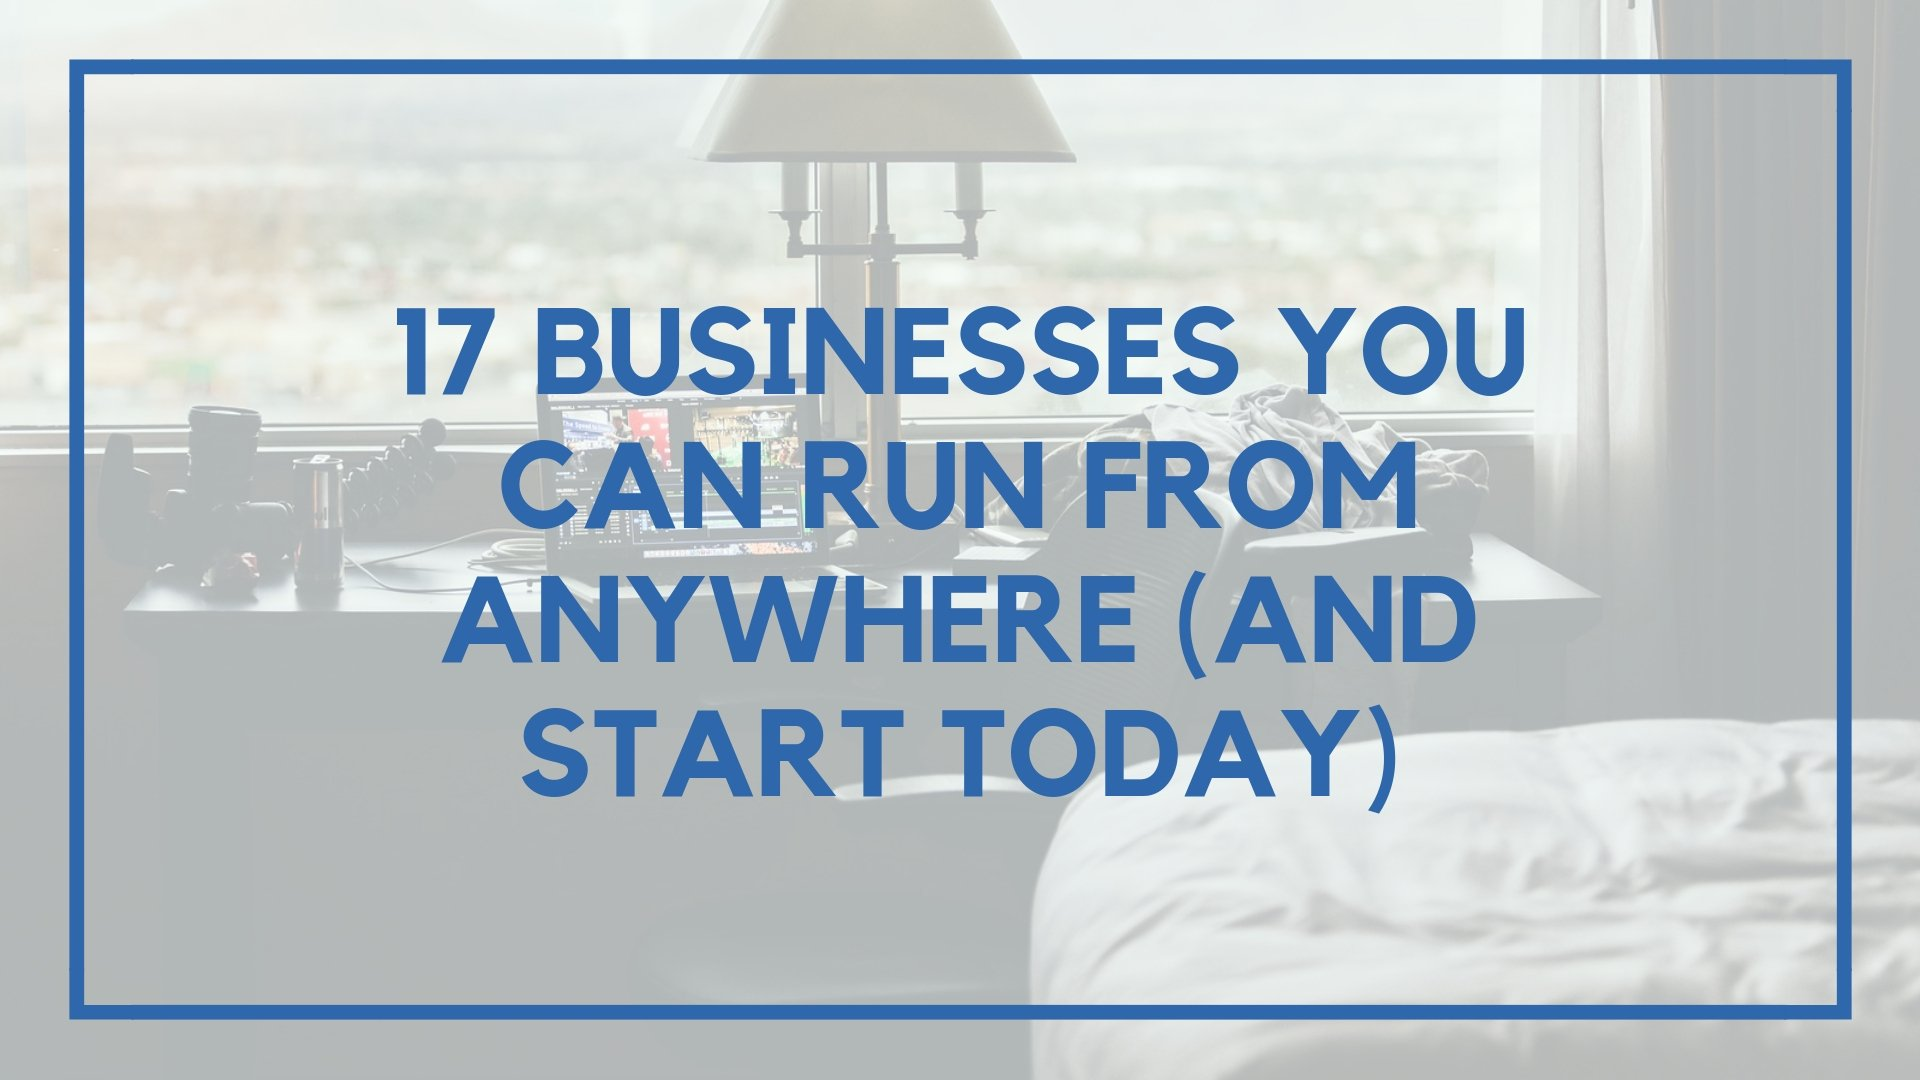 17 Businesses You Can Run from Anywhere on Earth (And Start Today)